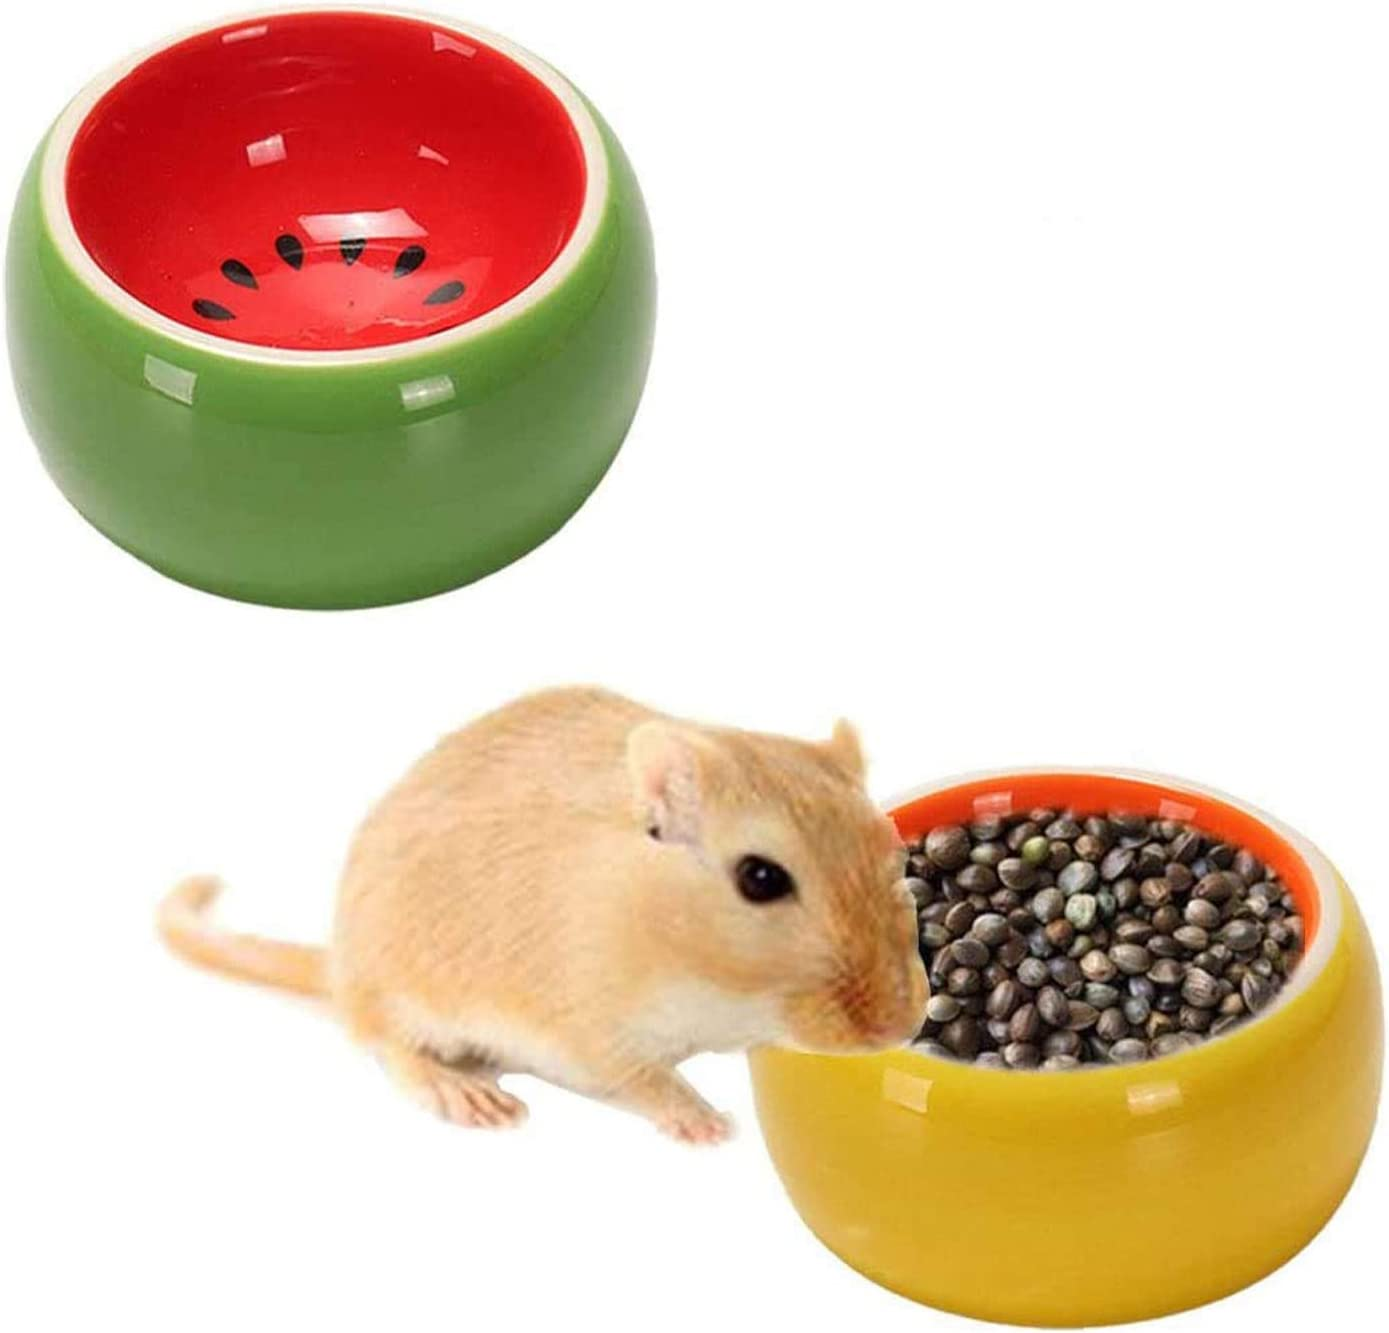 Tfwadmx 2 Pcs Hamster Food Bowl, Small Animals Ceramic Feeding Water Dish for Guinea Pig Rat Hedgehog Rabbit Gerbil Mouse Rodent